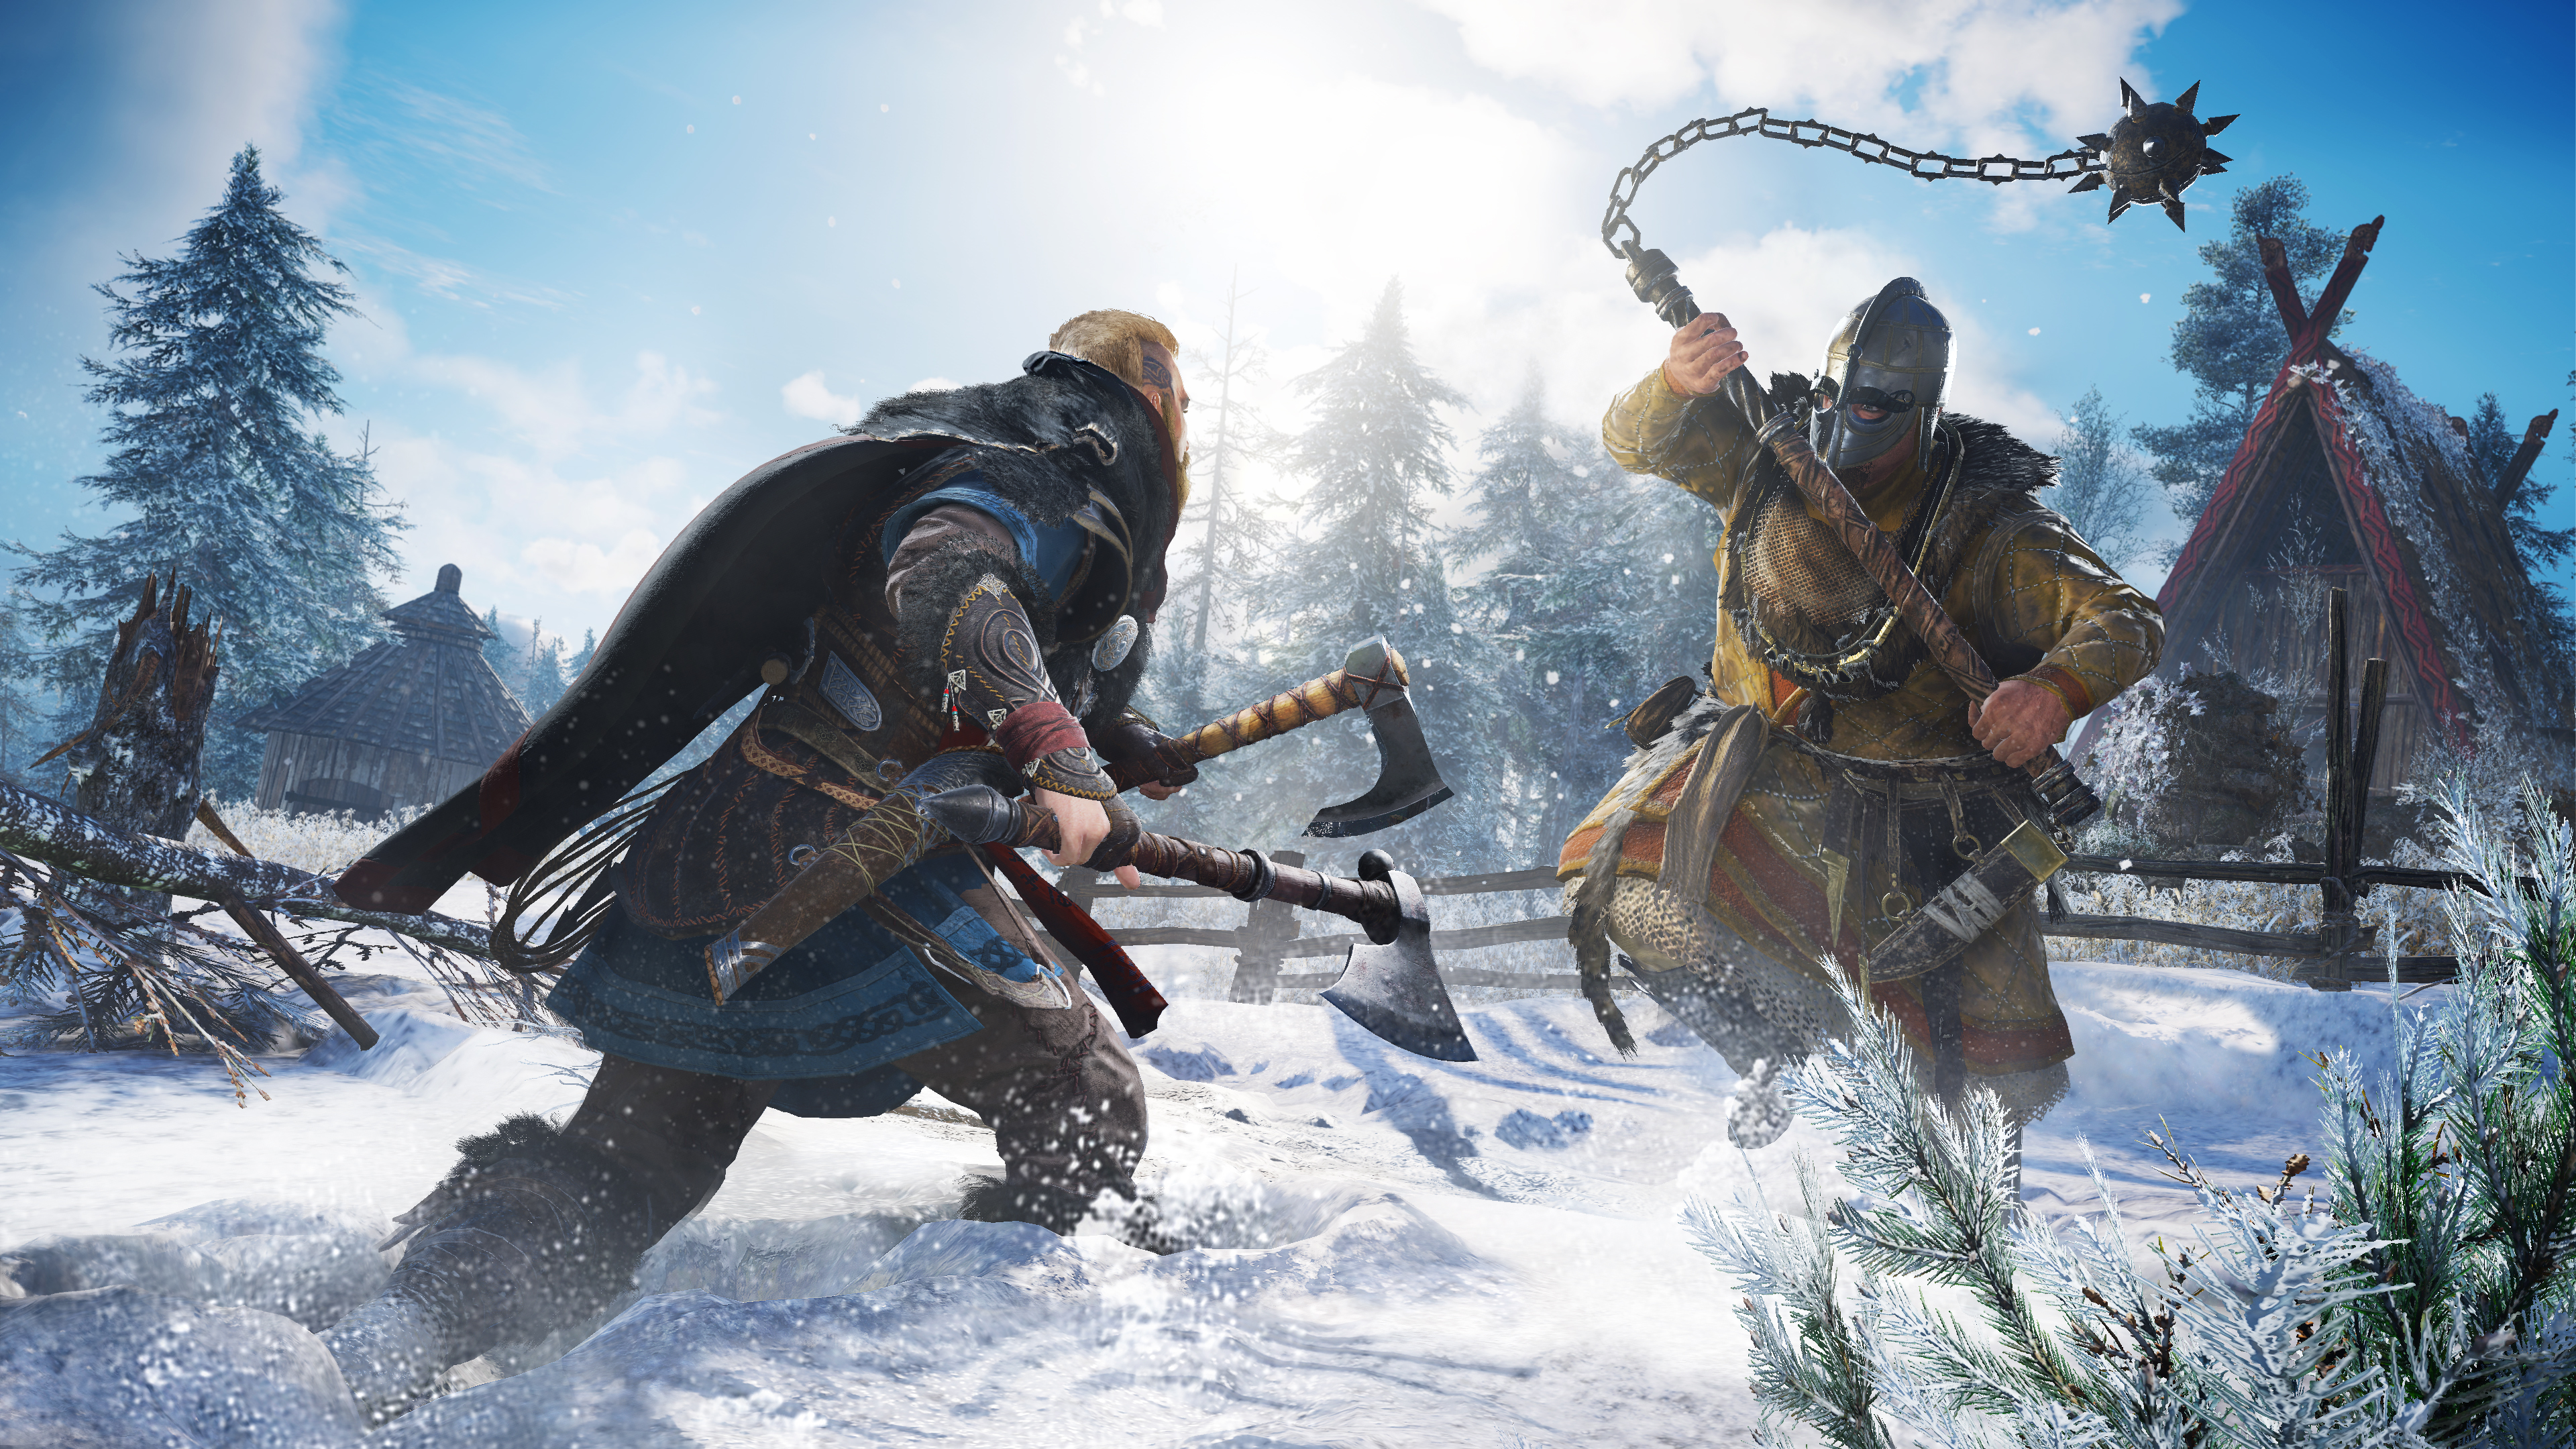 Скриншот №3 к Assassins Creed Вальгалла PS4 and PS5